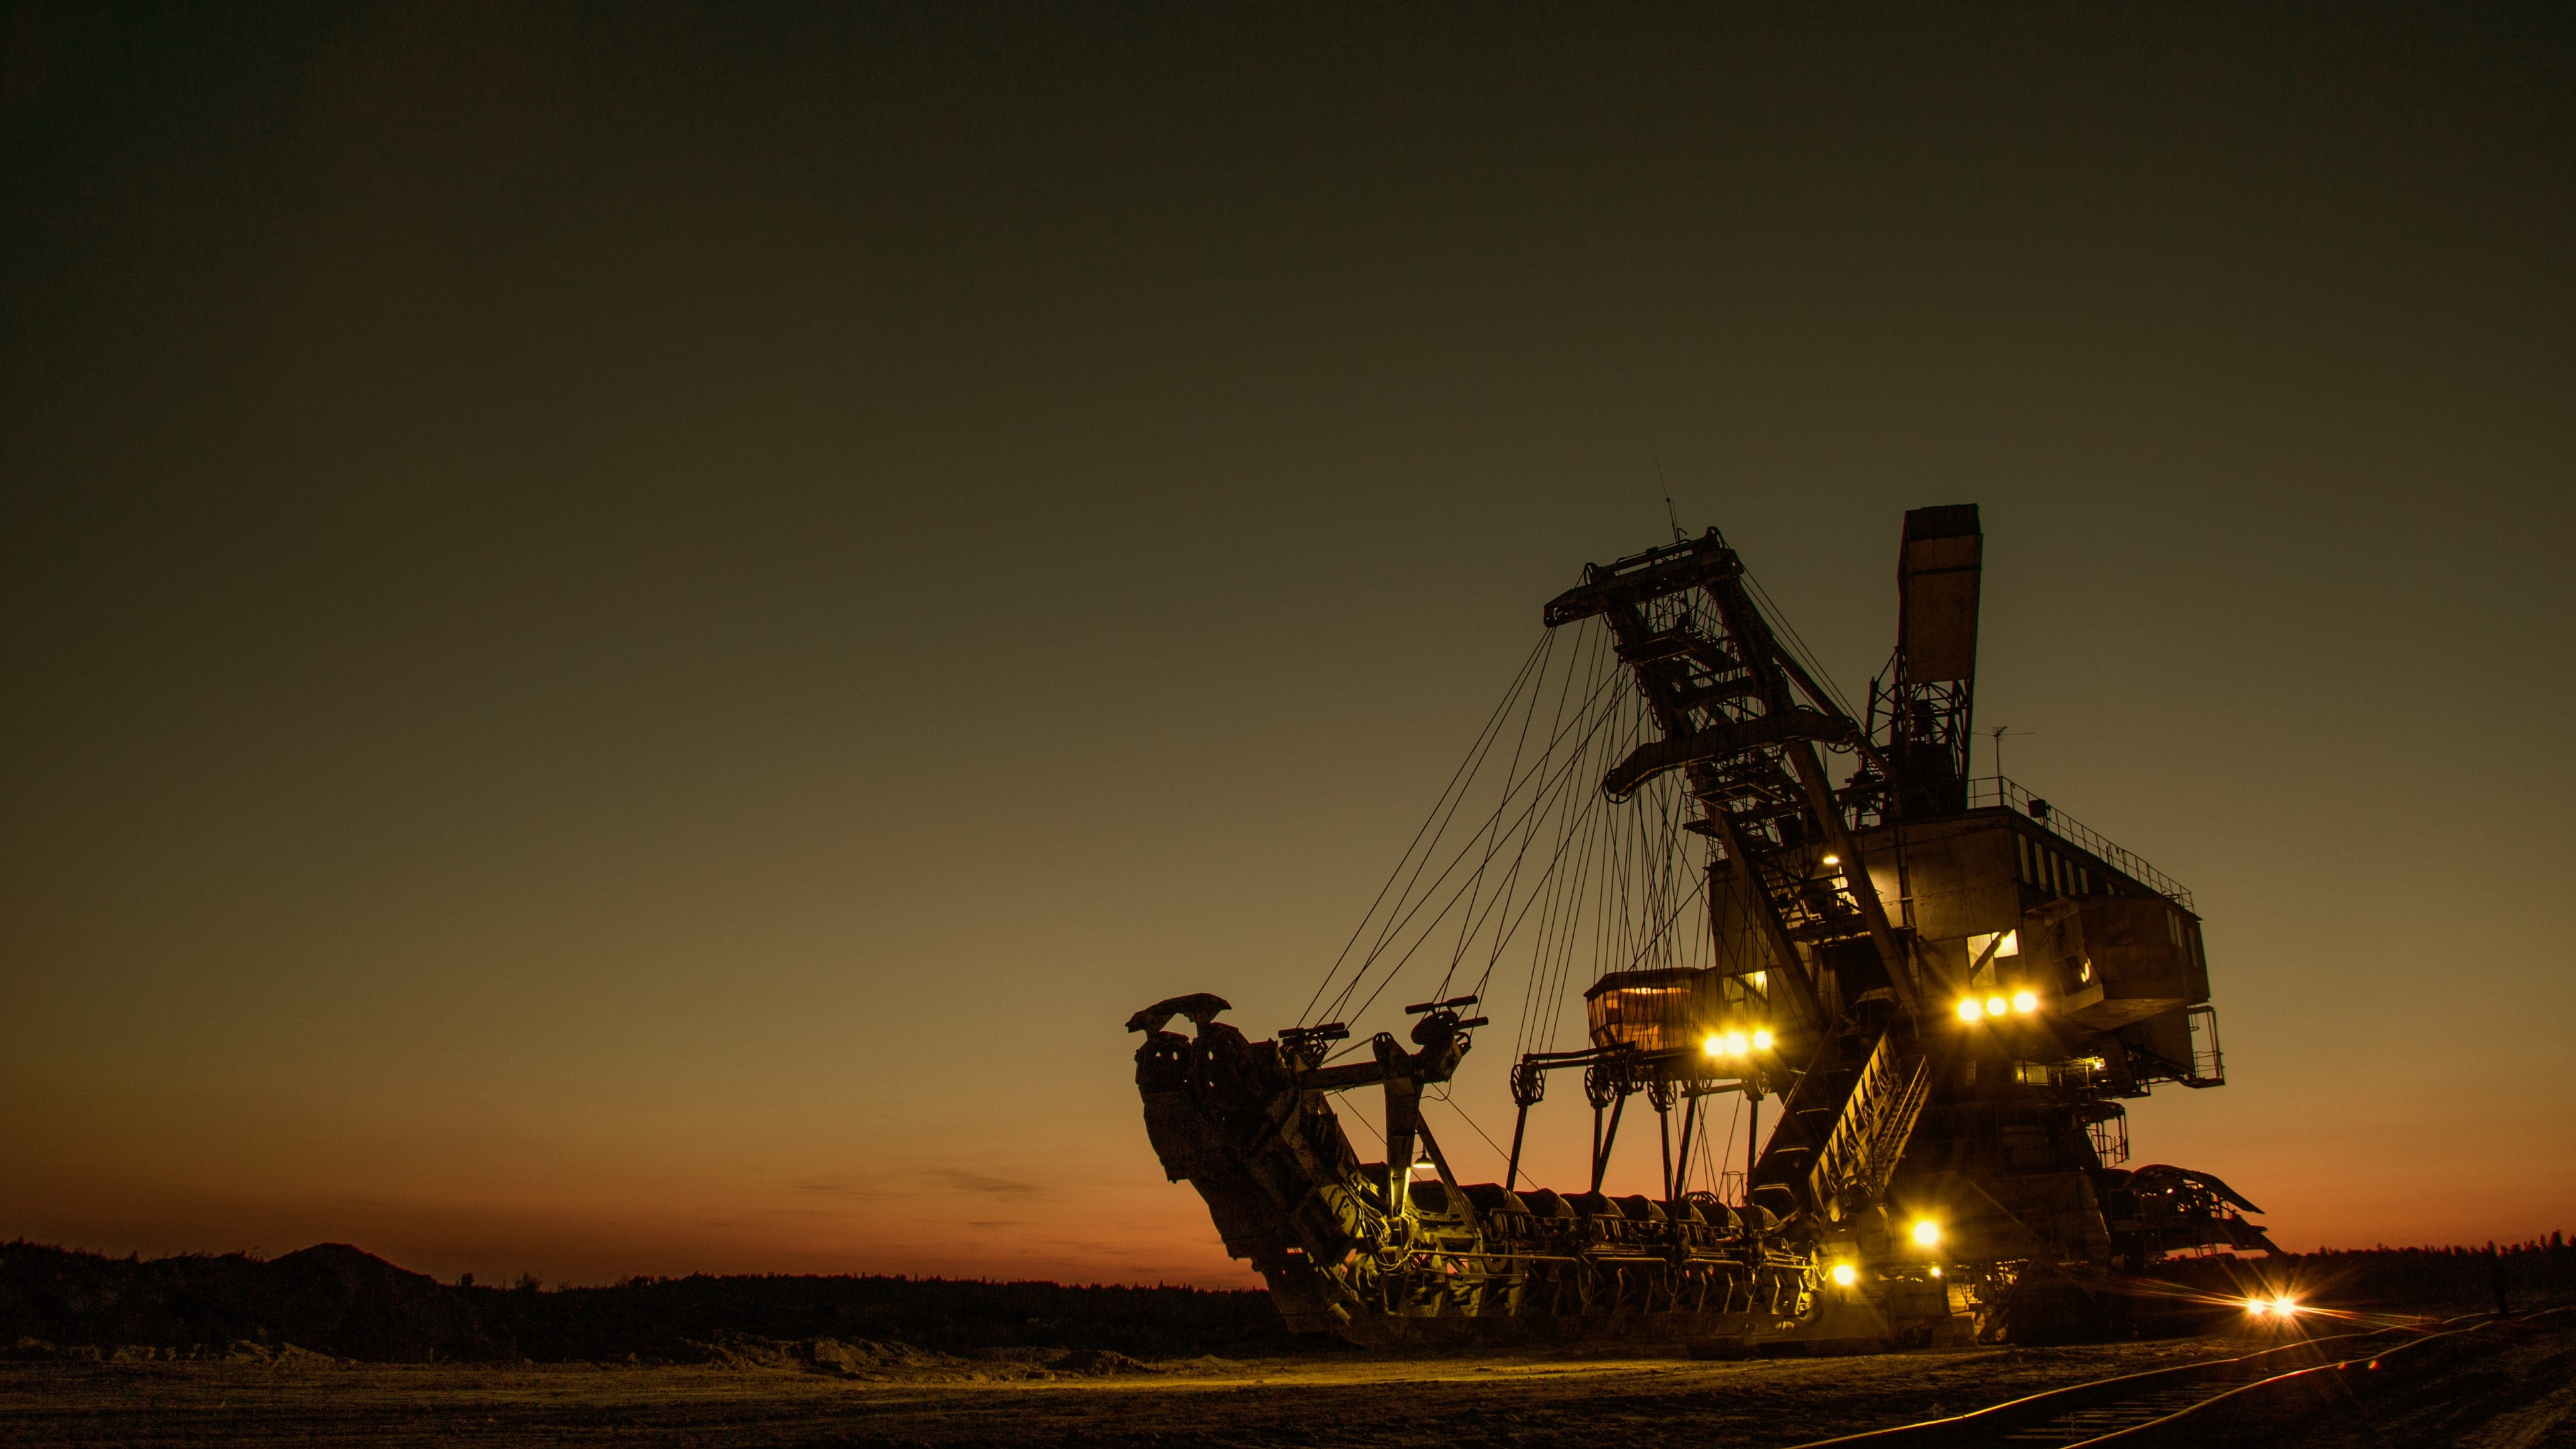 Mine excavator wallpaper 3840x2160